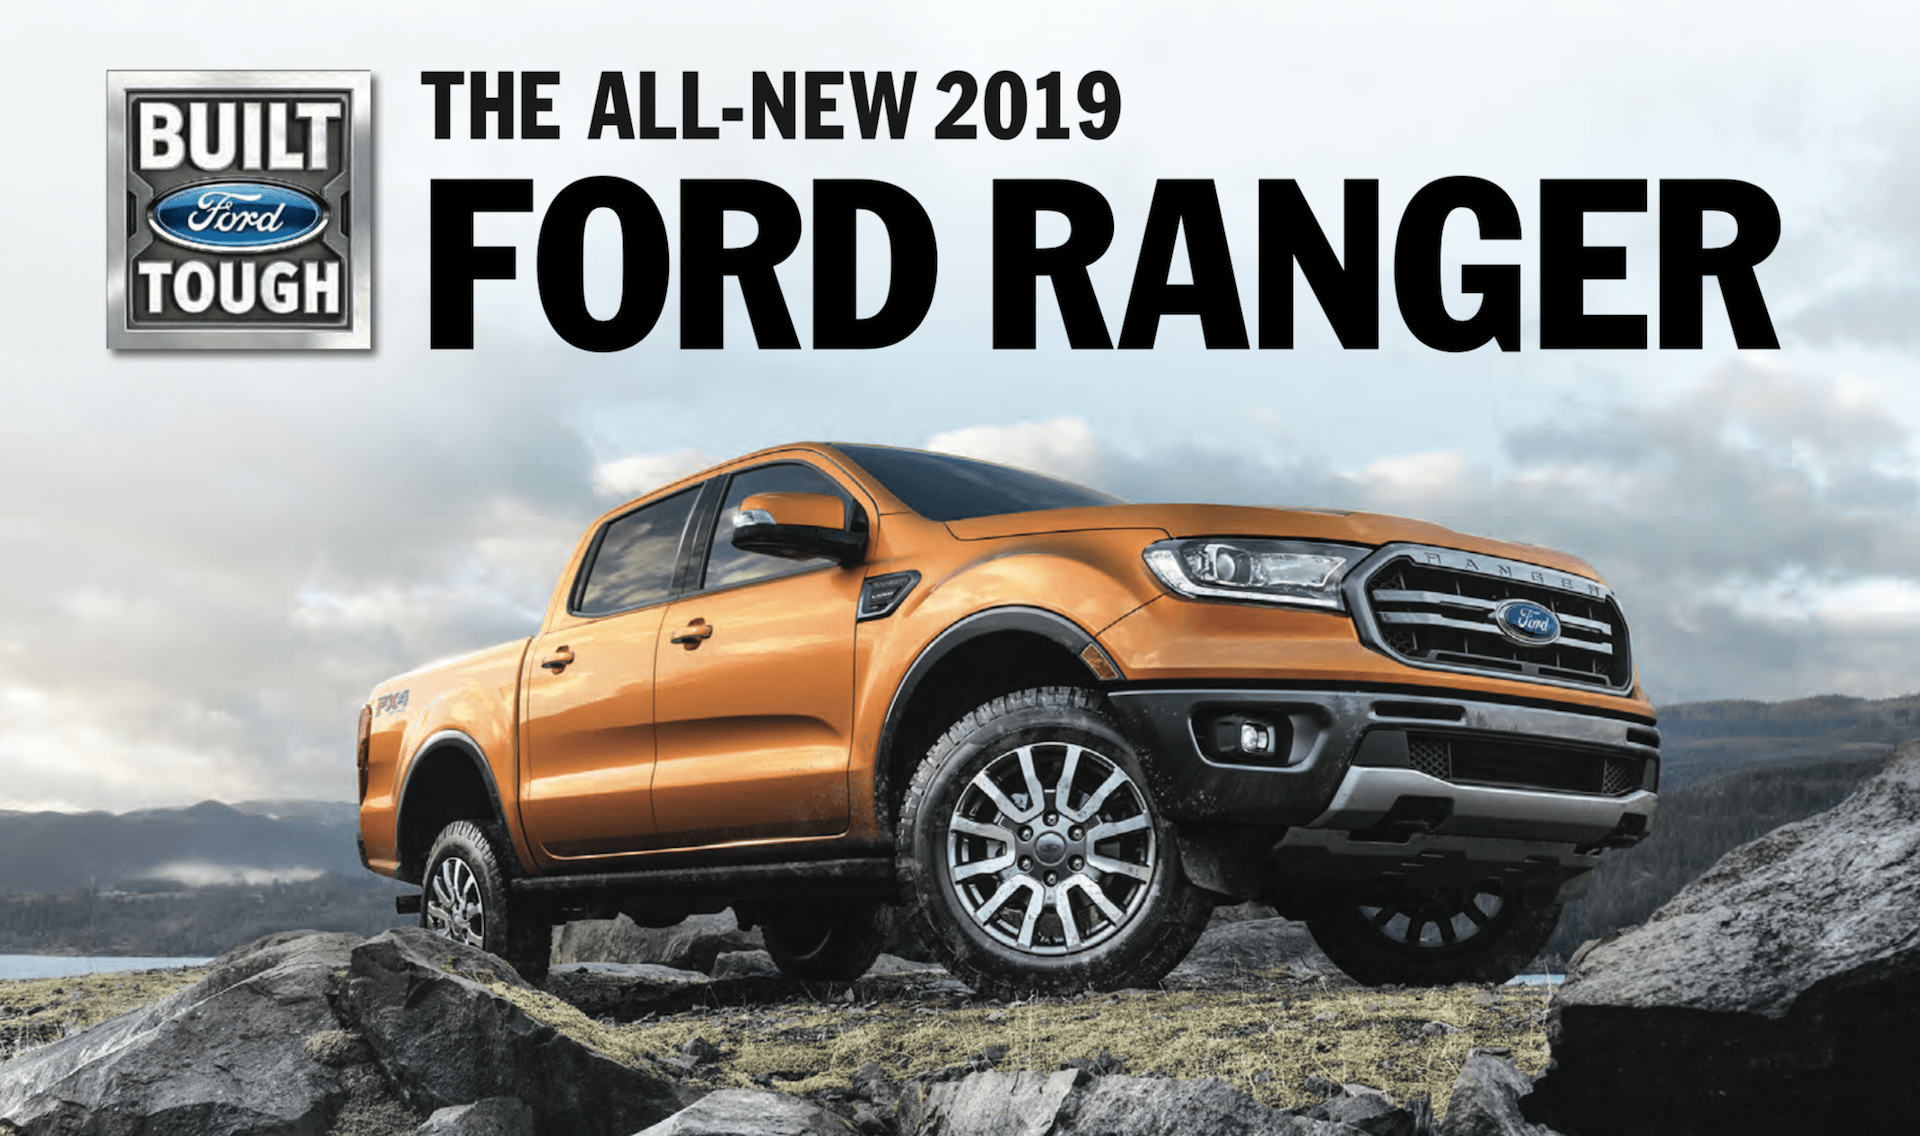 77 All New 2019 Ford Ranger Usa Speed Test